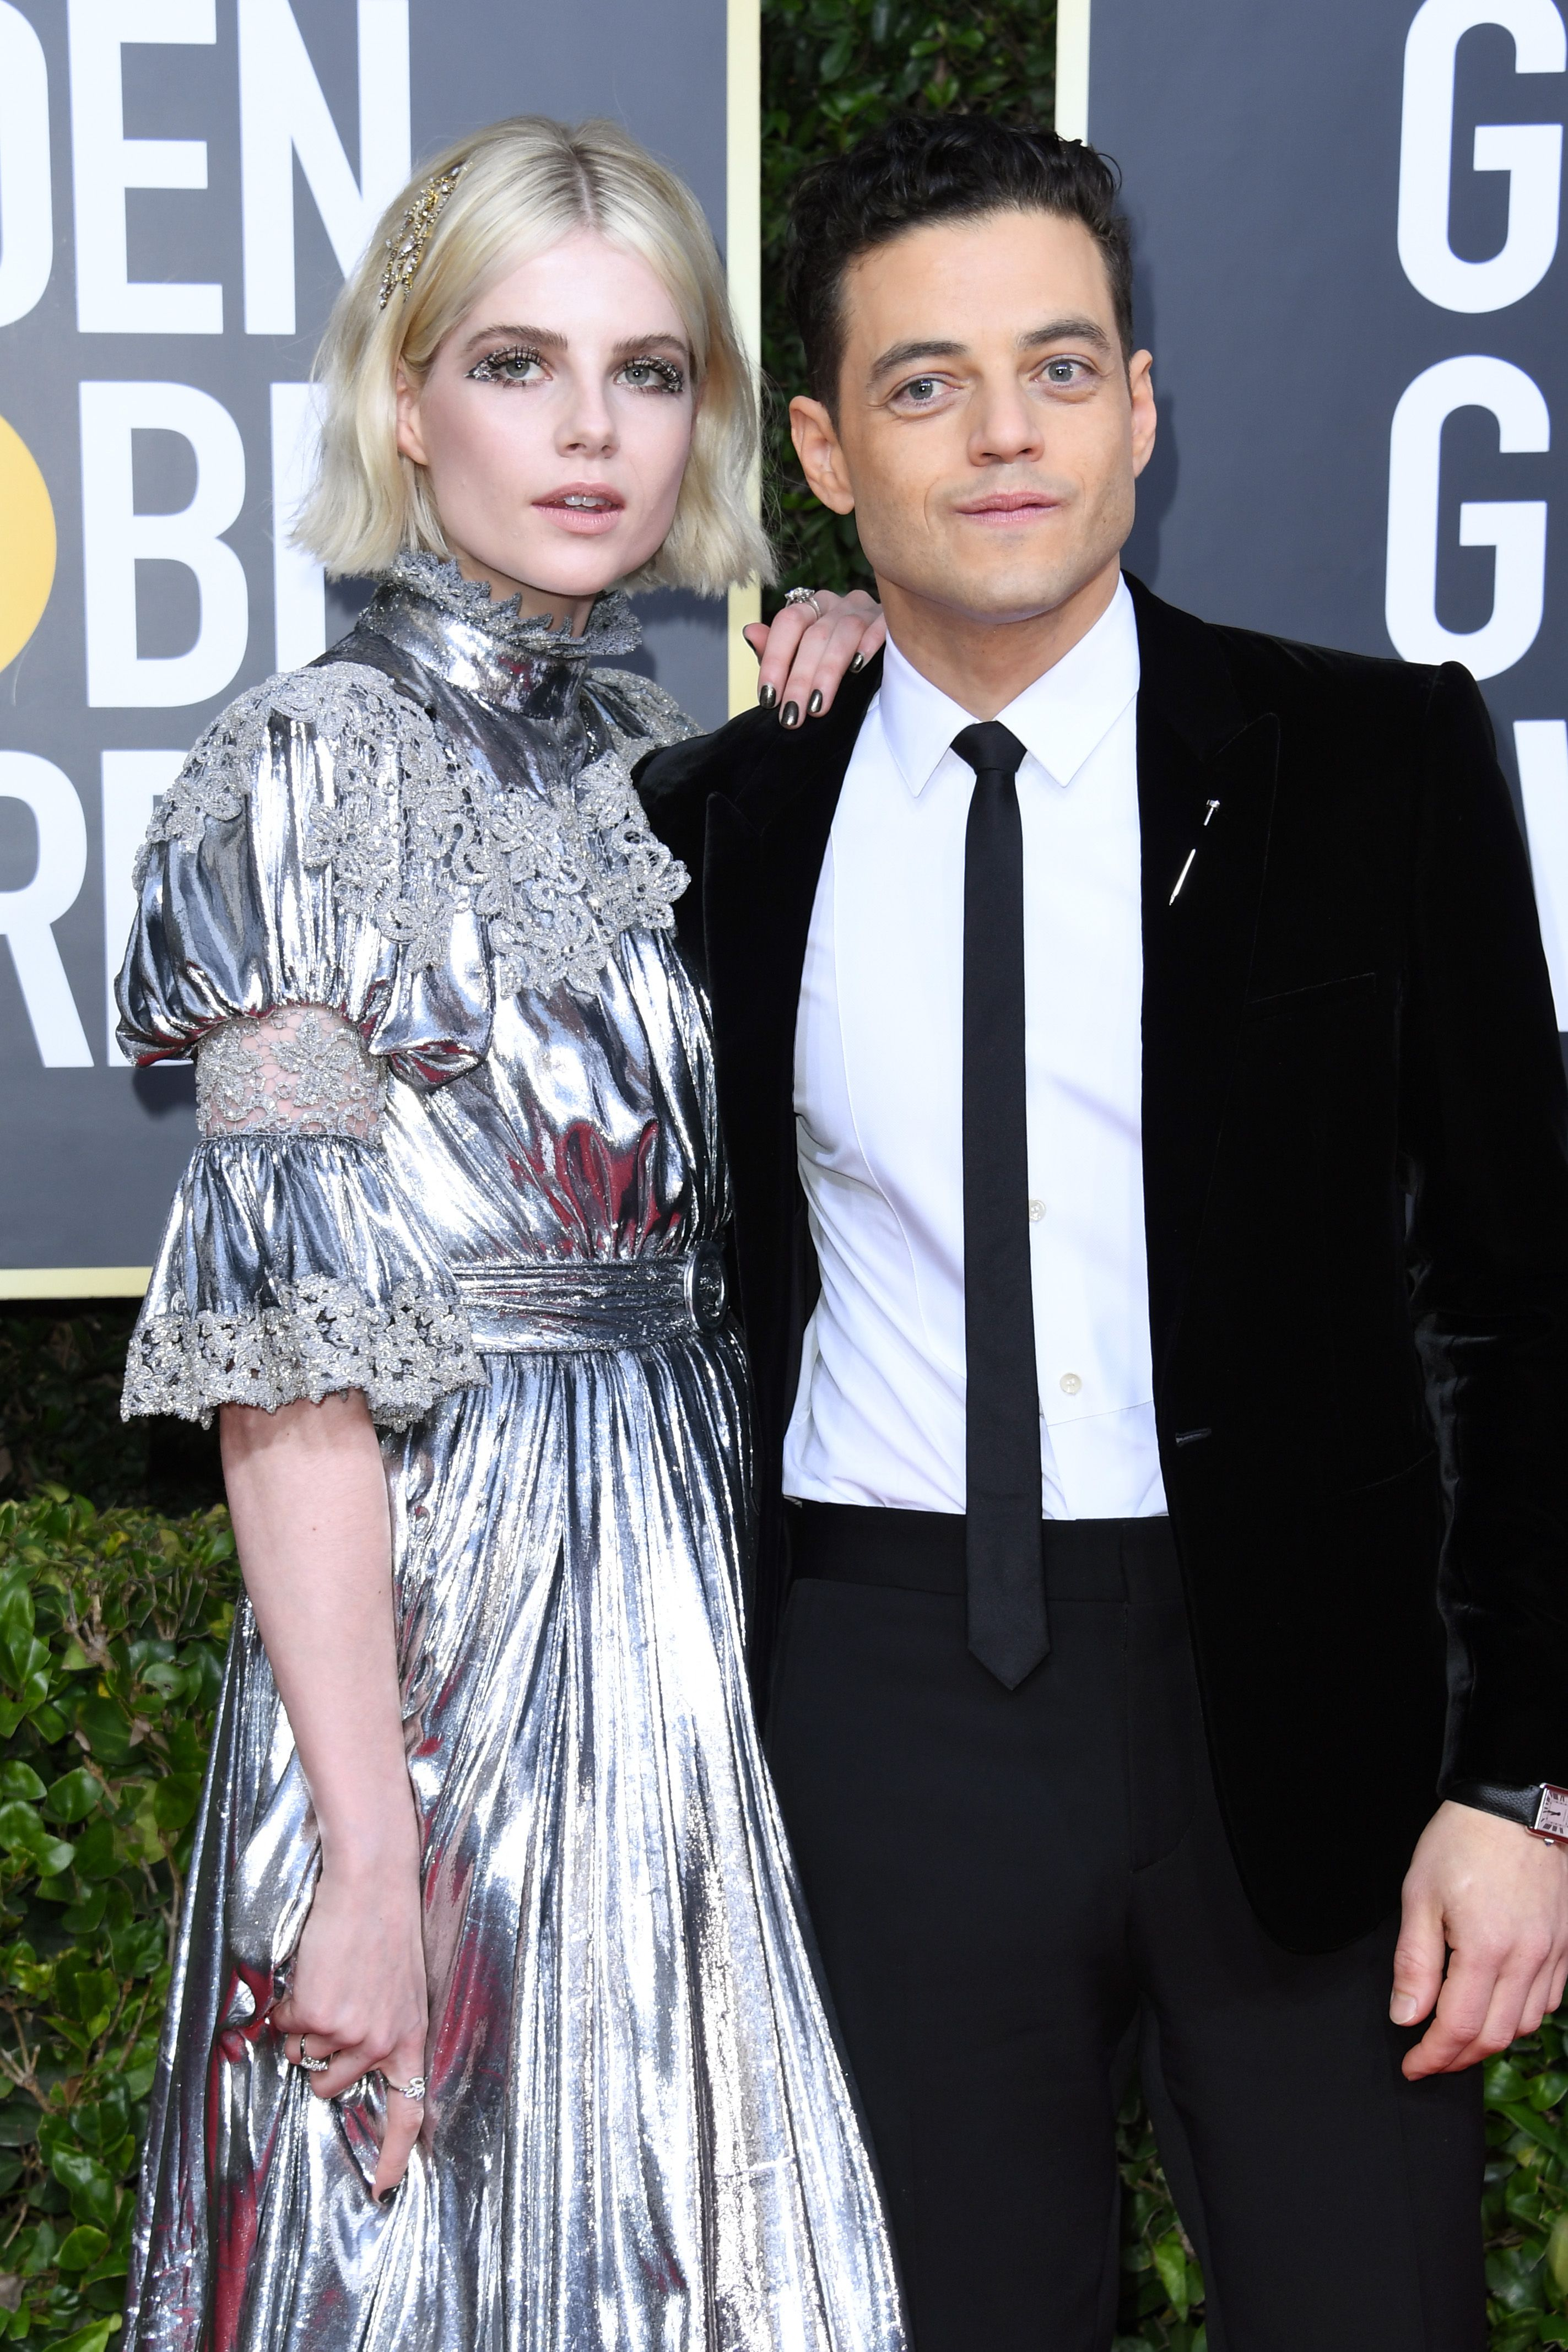 Hell is empty and all the demons are here... {End} Lucy-boynton-and-rami-malek-attend-the-77th-annual-golden-news-photo-1578270879